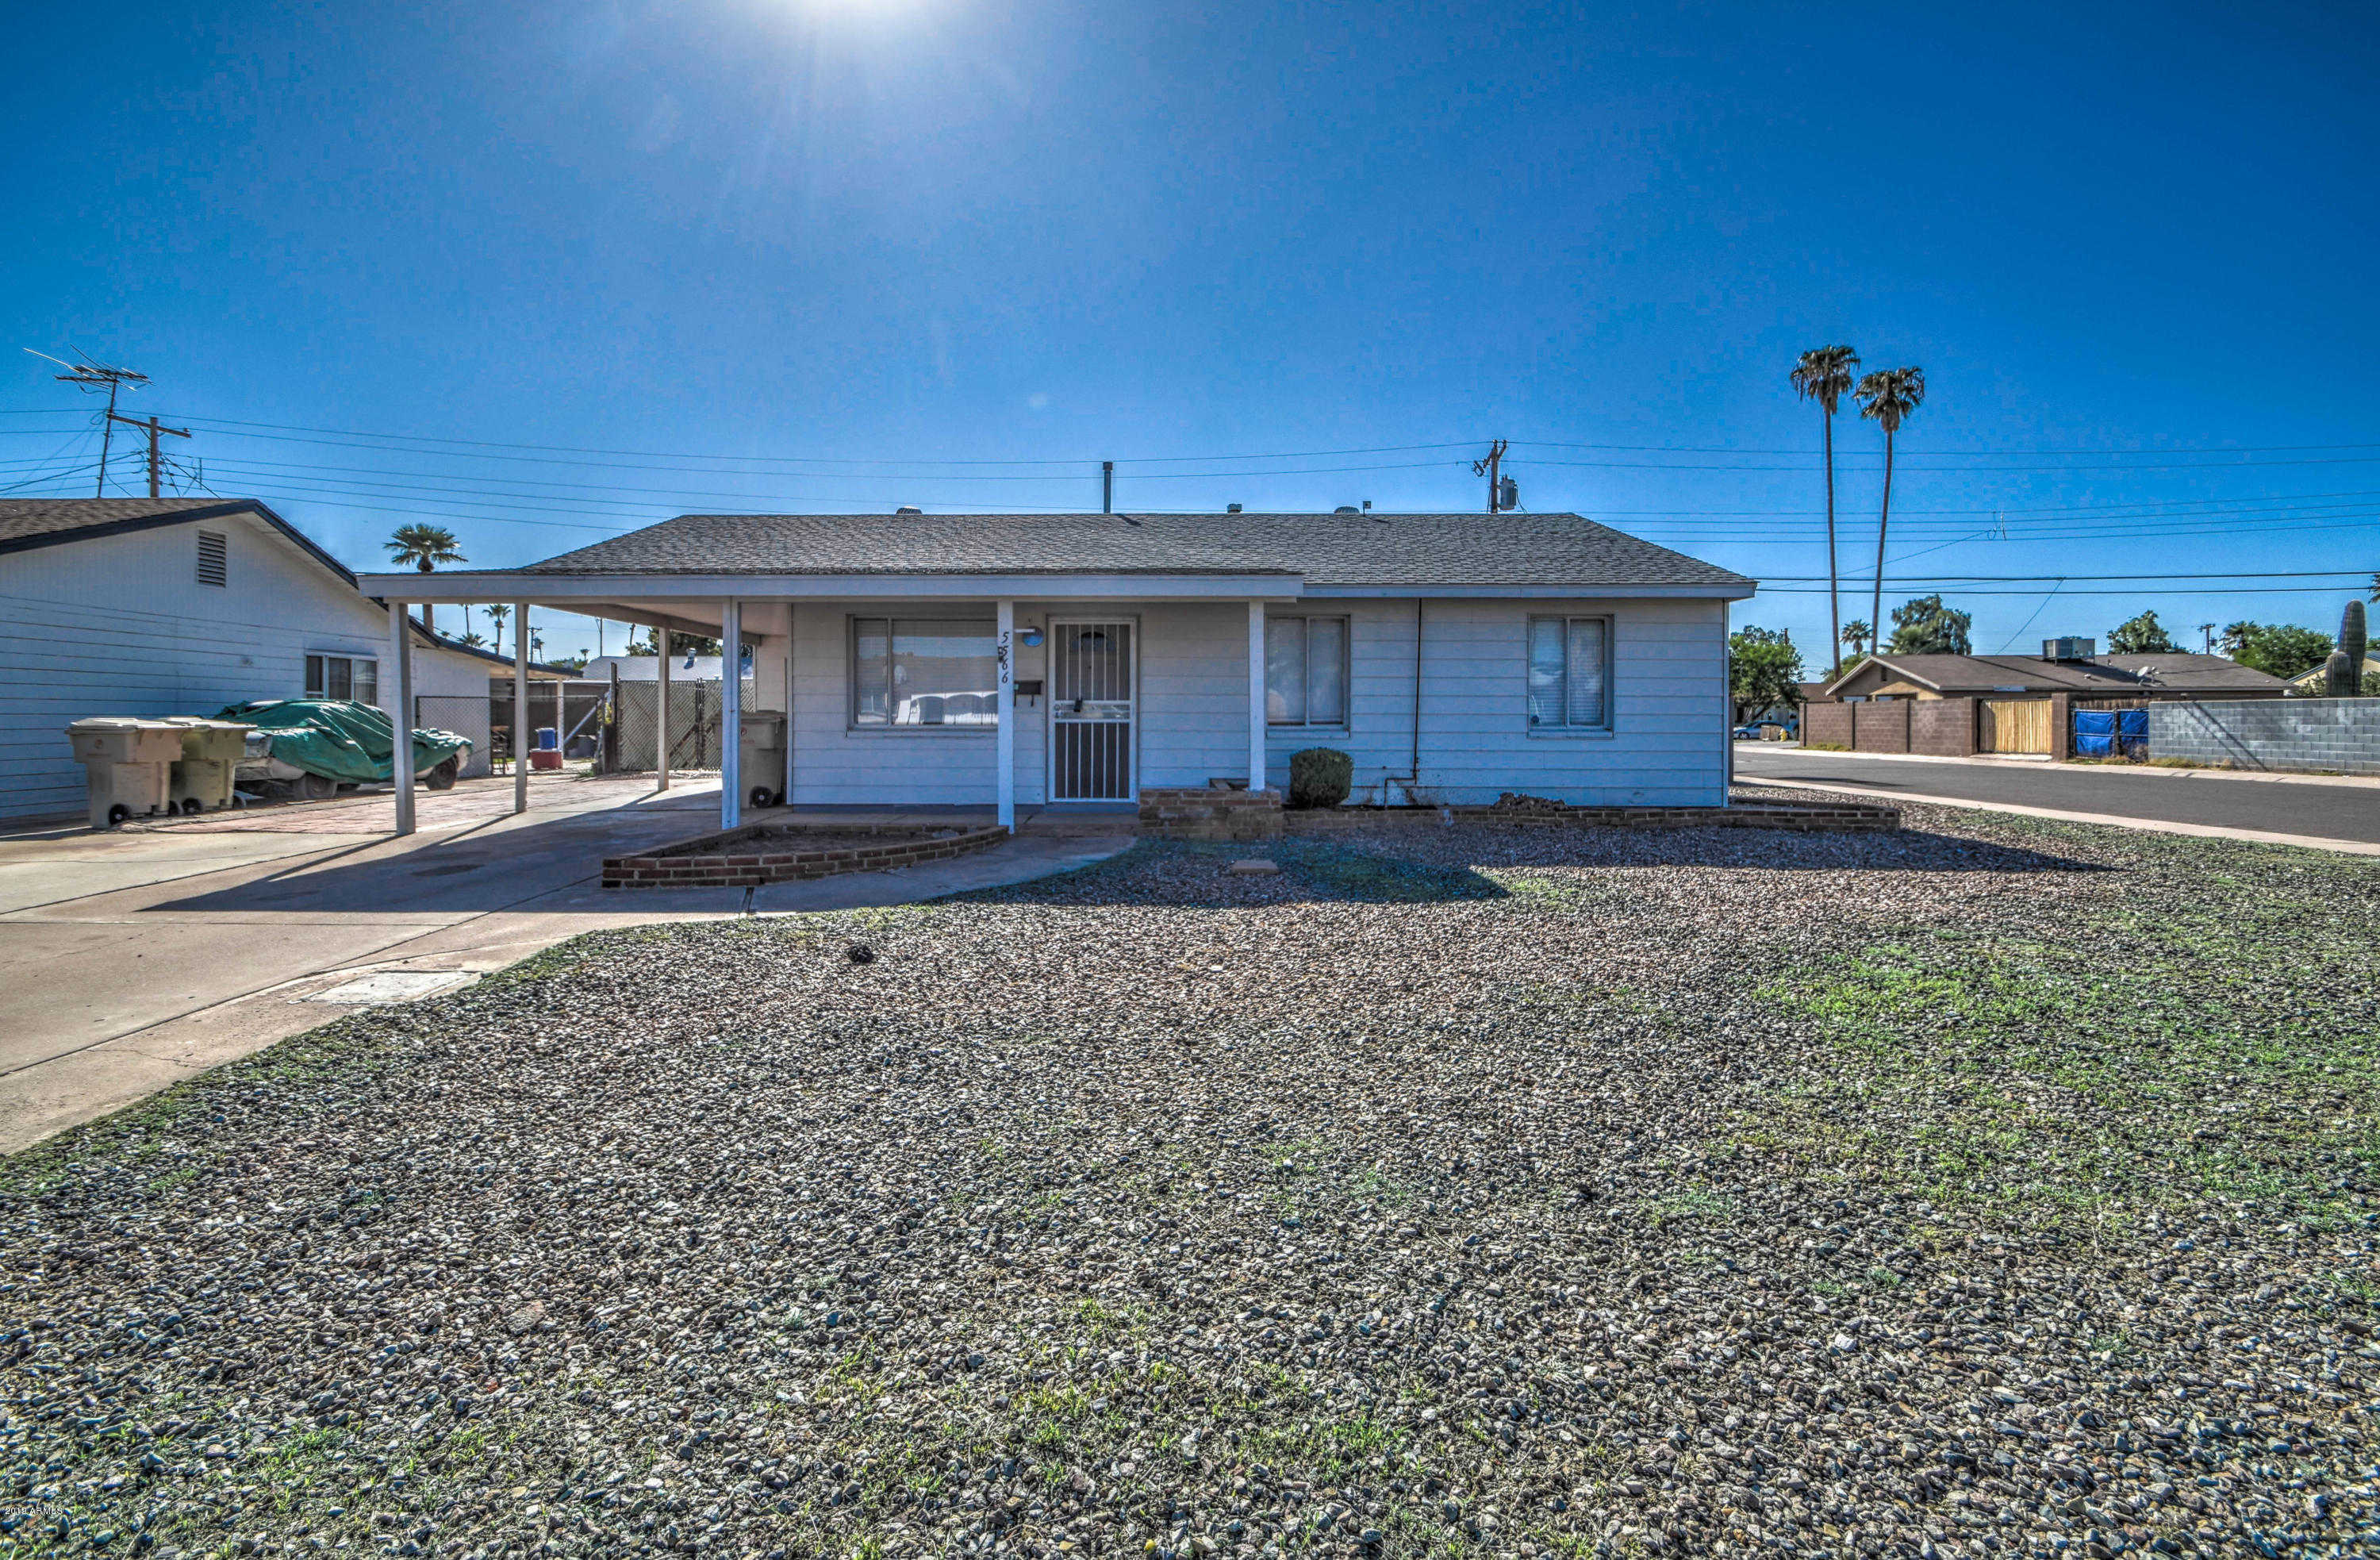 $204,900 - 3Br/2Ba - Home for Sale in Maryvale Terrace 20-a Lts 7490-7494, Glendale